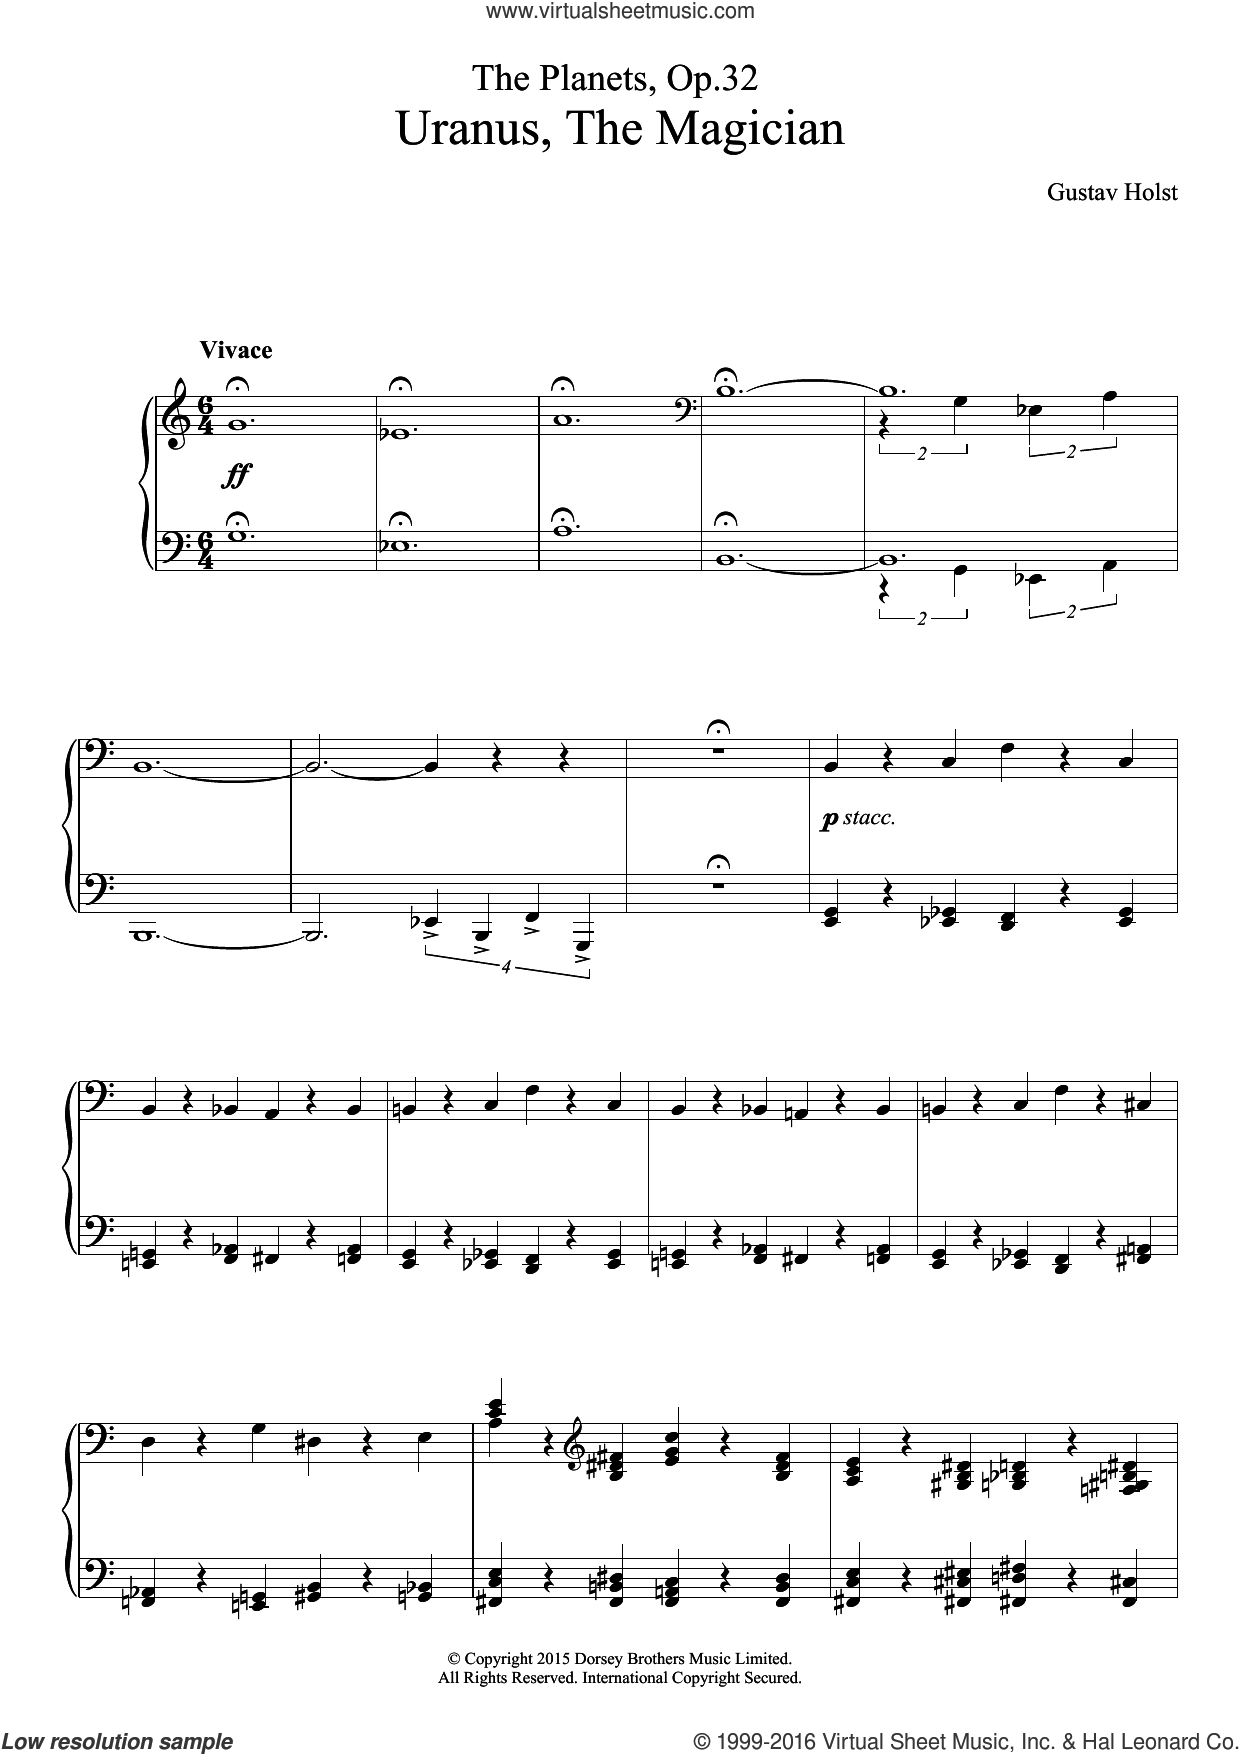 The Planets, Op. 32 - Uranus, The Magician sheet music for piano solo by Gustav Holst